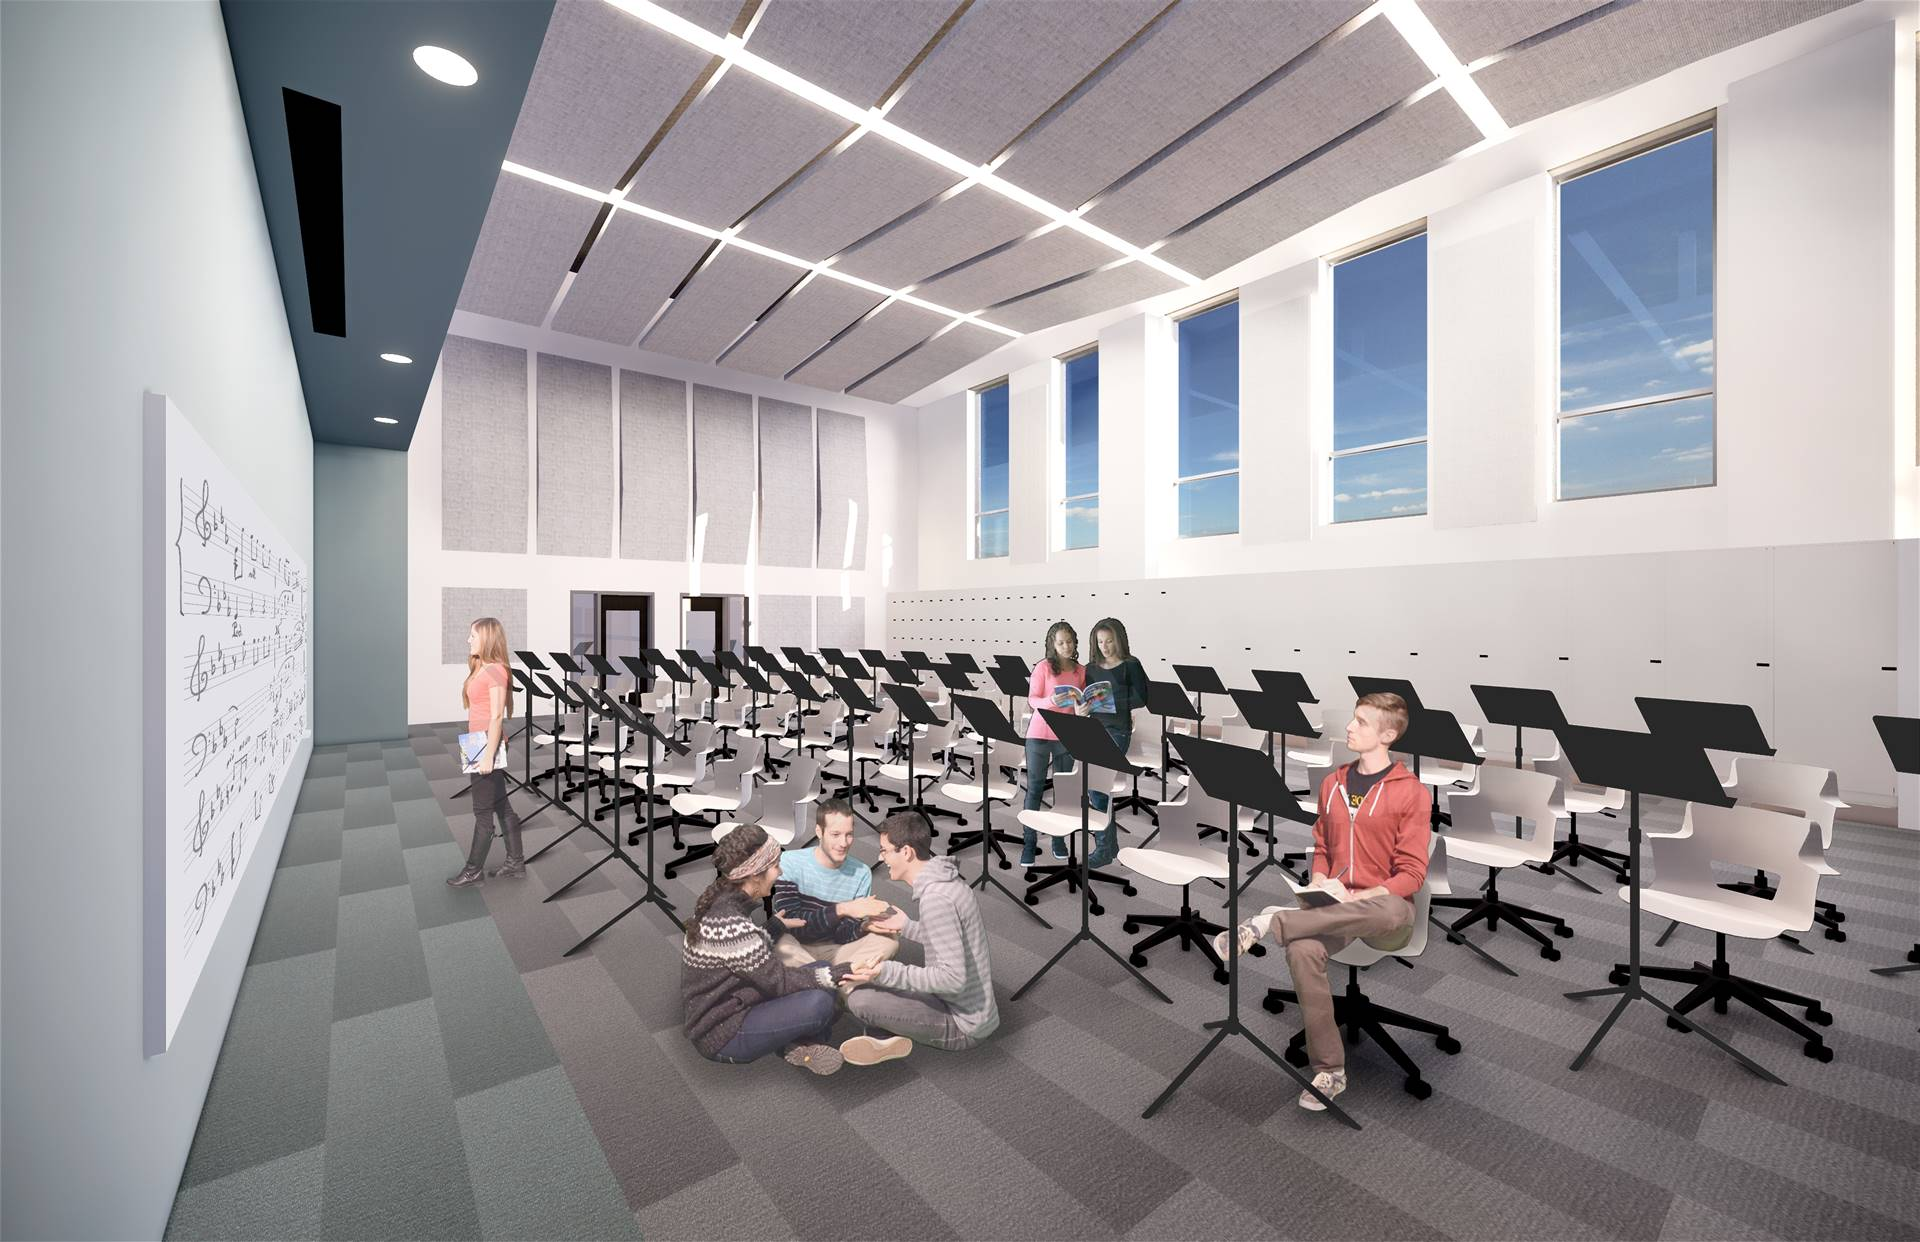 A rendering of a music room